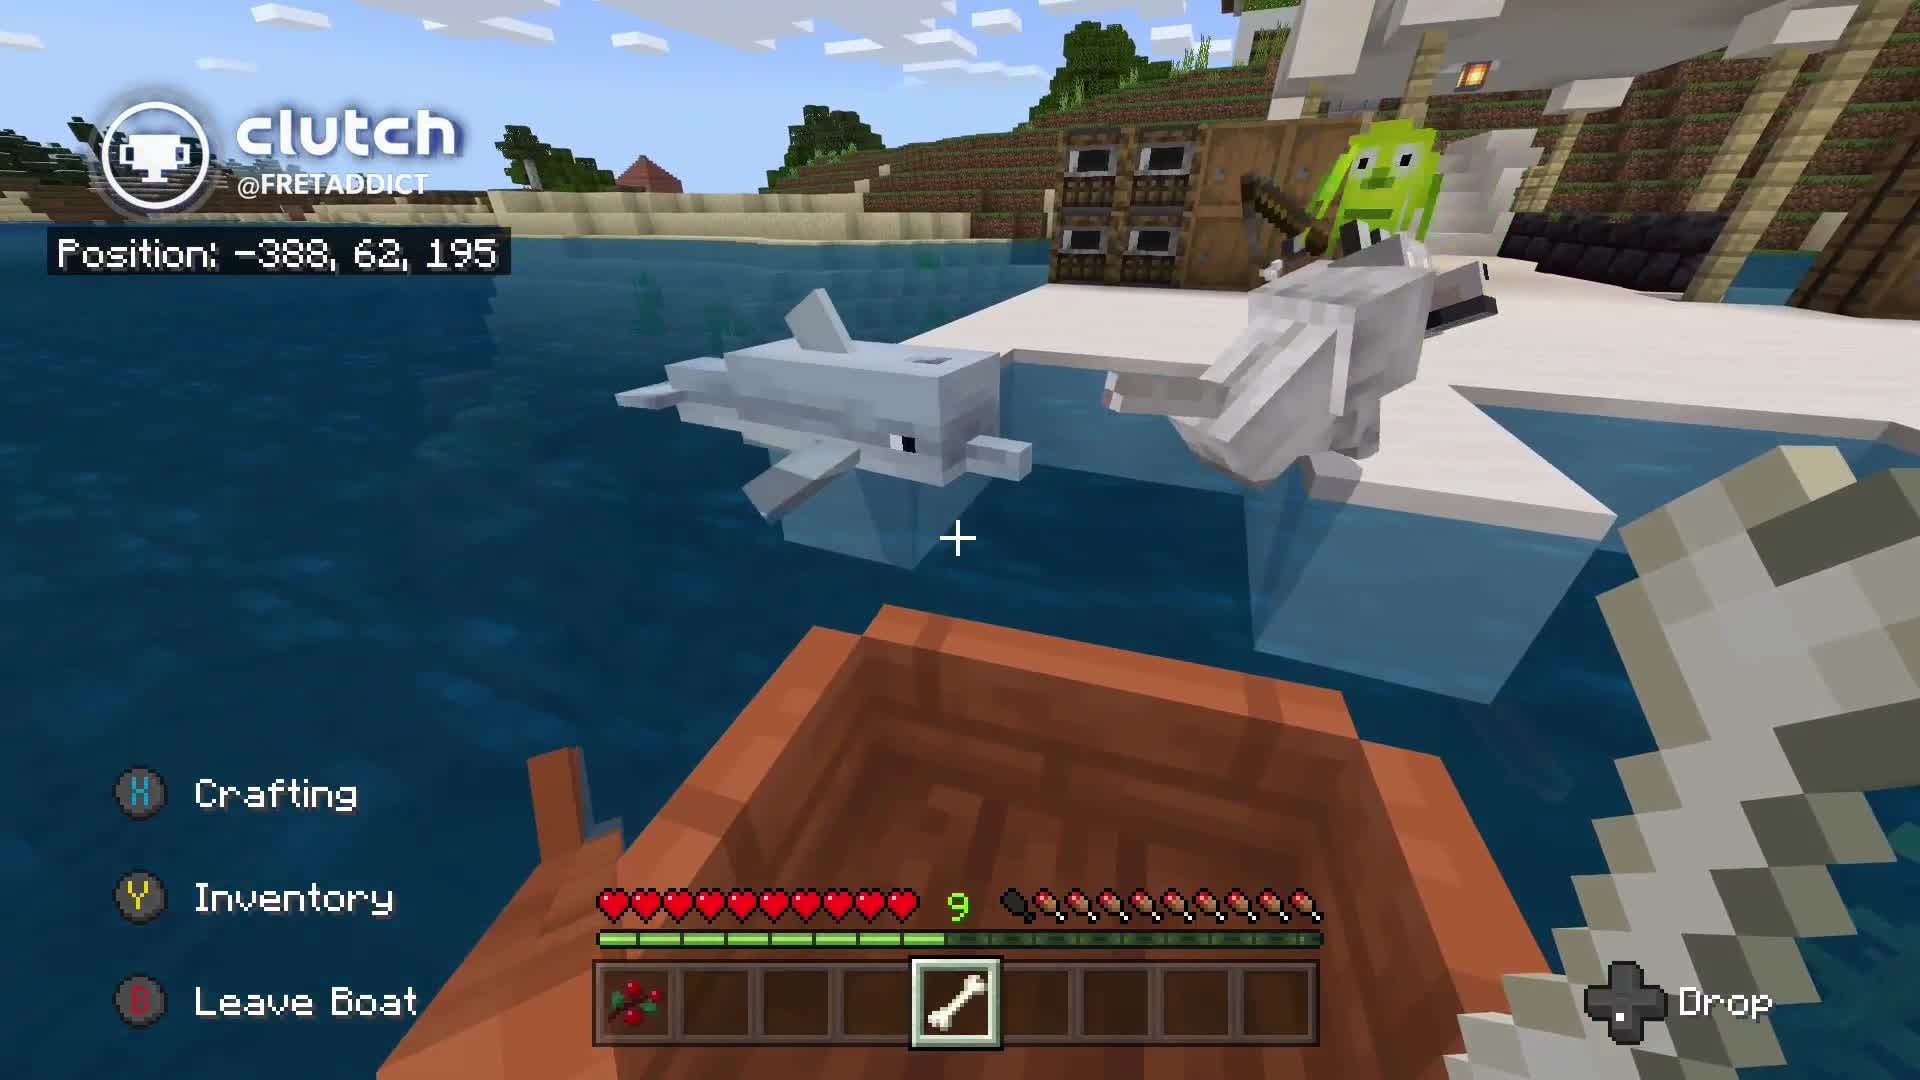 Minecraft: General - This is both horrific and hilarious at the same time video cover image 0